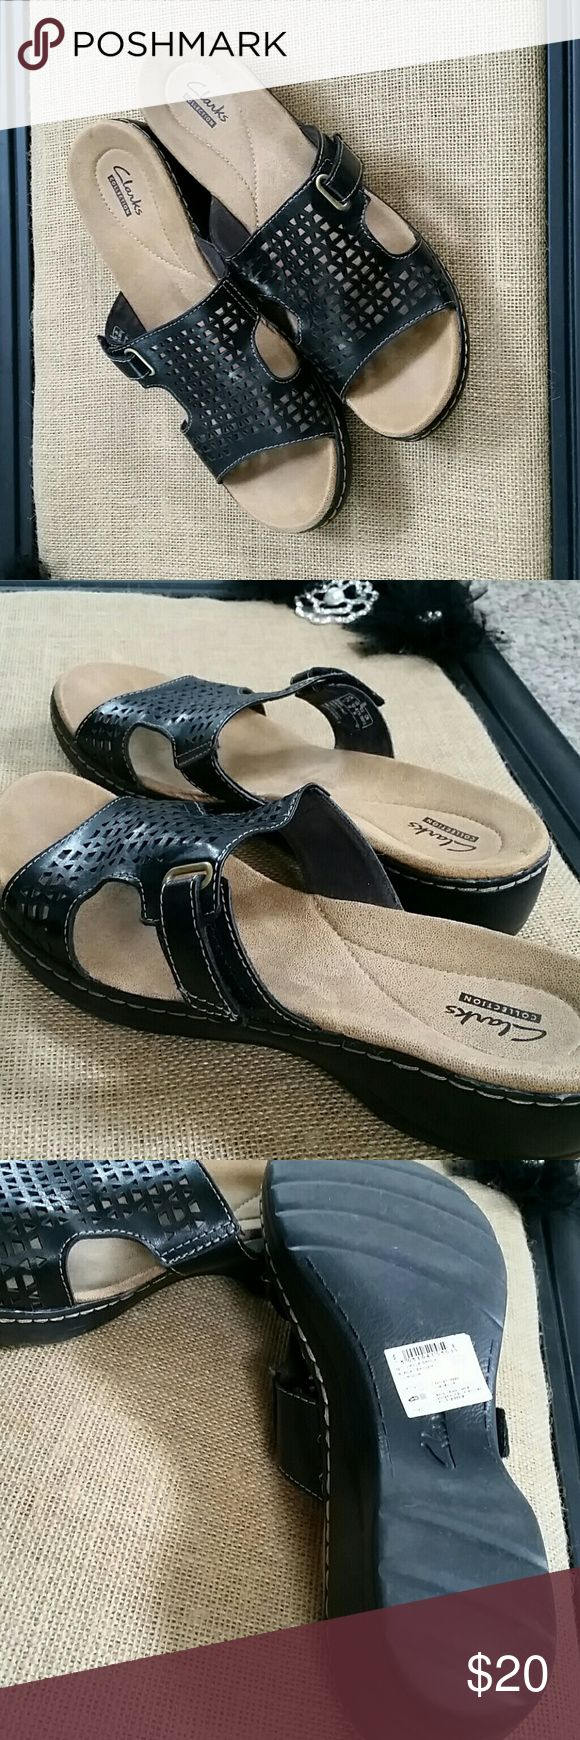 Clarks Sandals Like New Clarks, worn once  Adjustable velcro closure on side Clarks Shoes Sandals